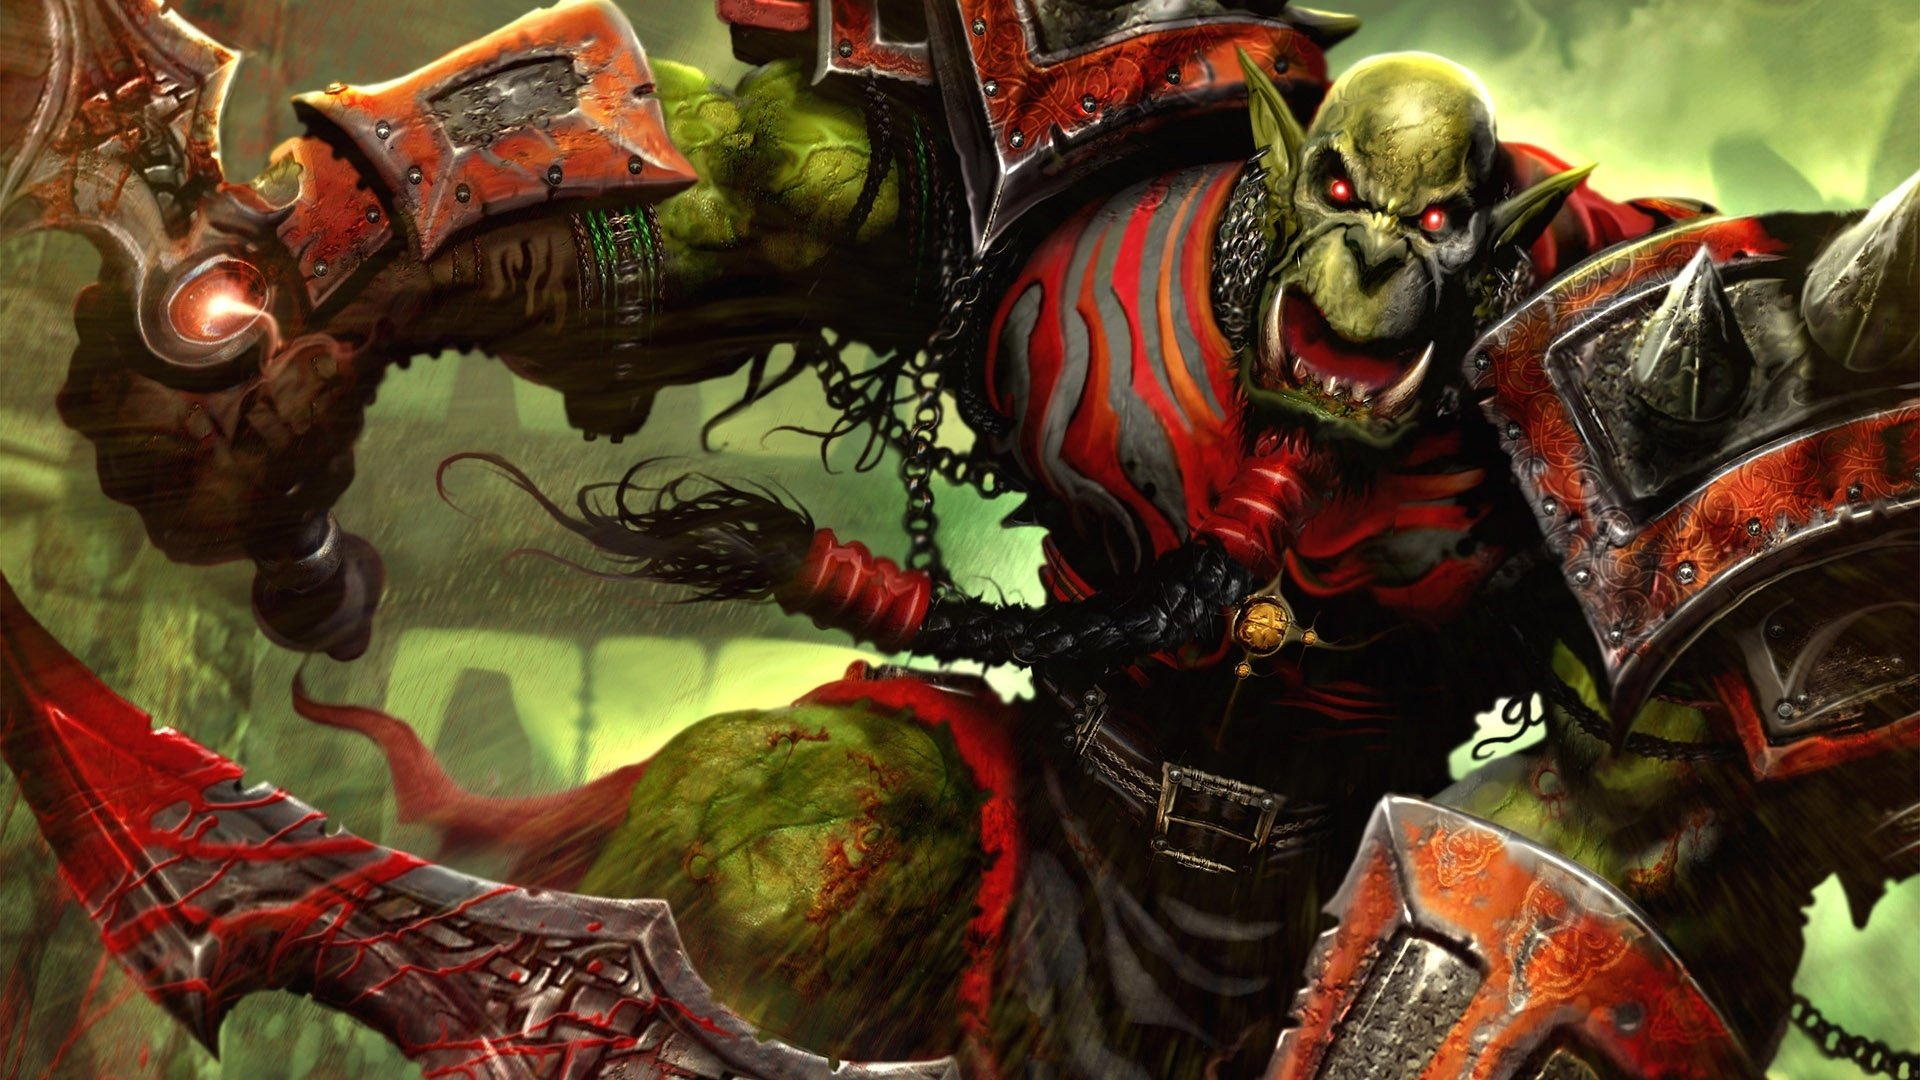 77 orc hd wallpapers | background images - wallpaper abyss